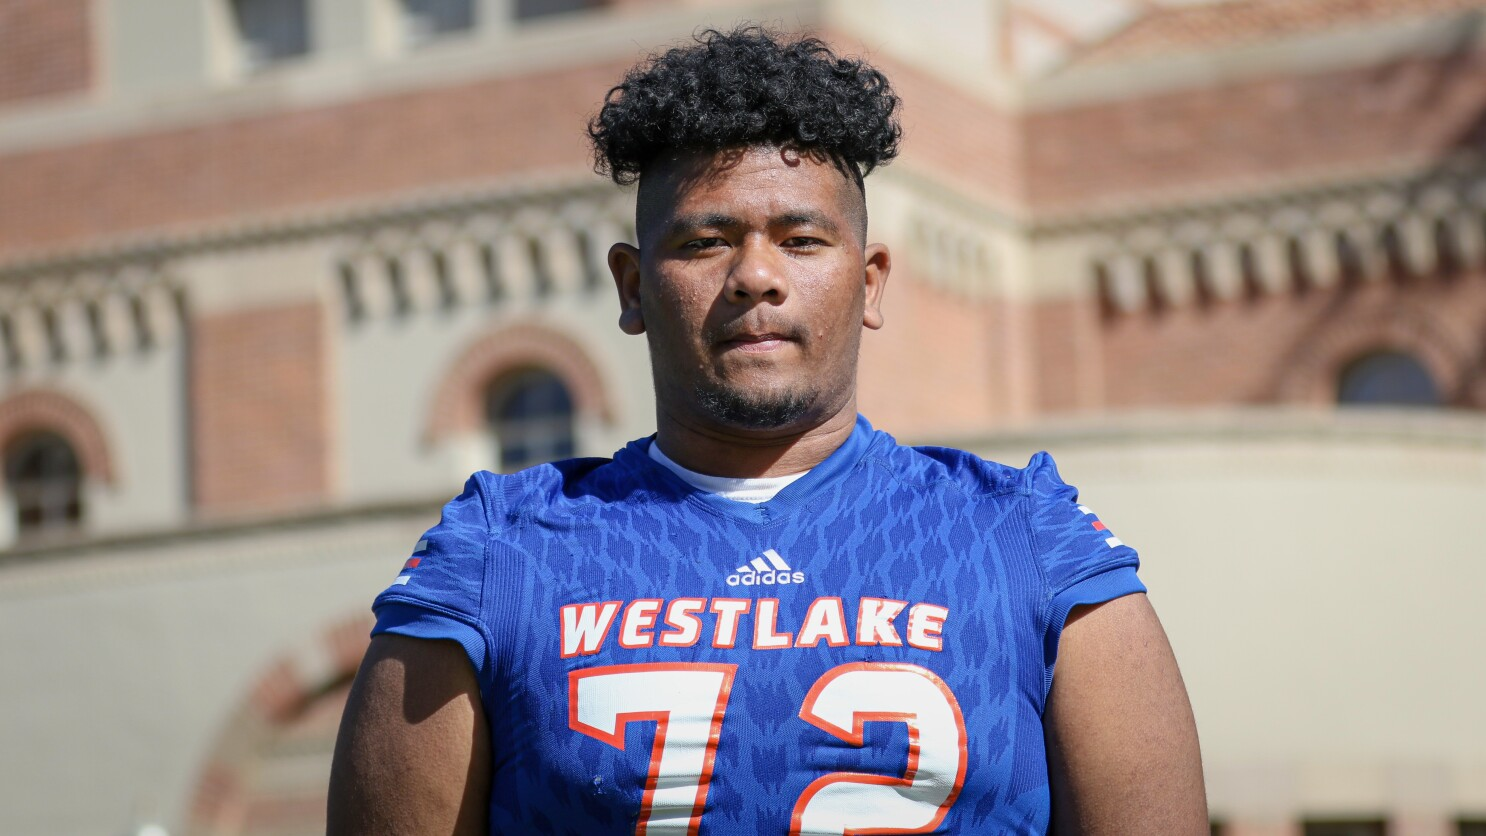 Westlake's Victory Vaka knows the recruiting game will be worth the wait